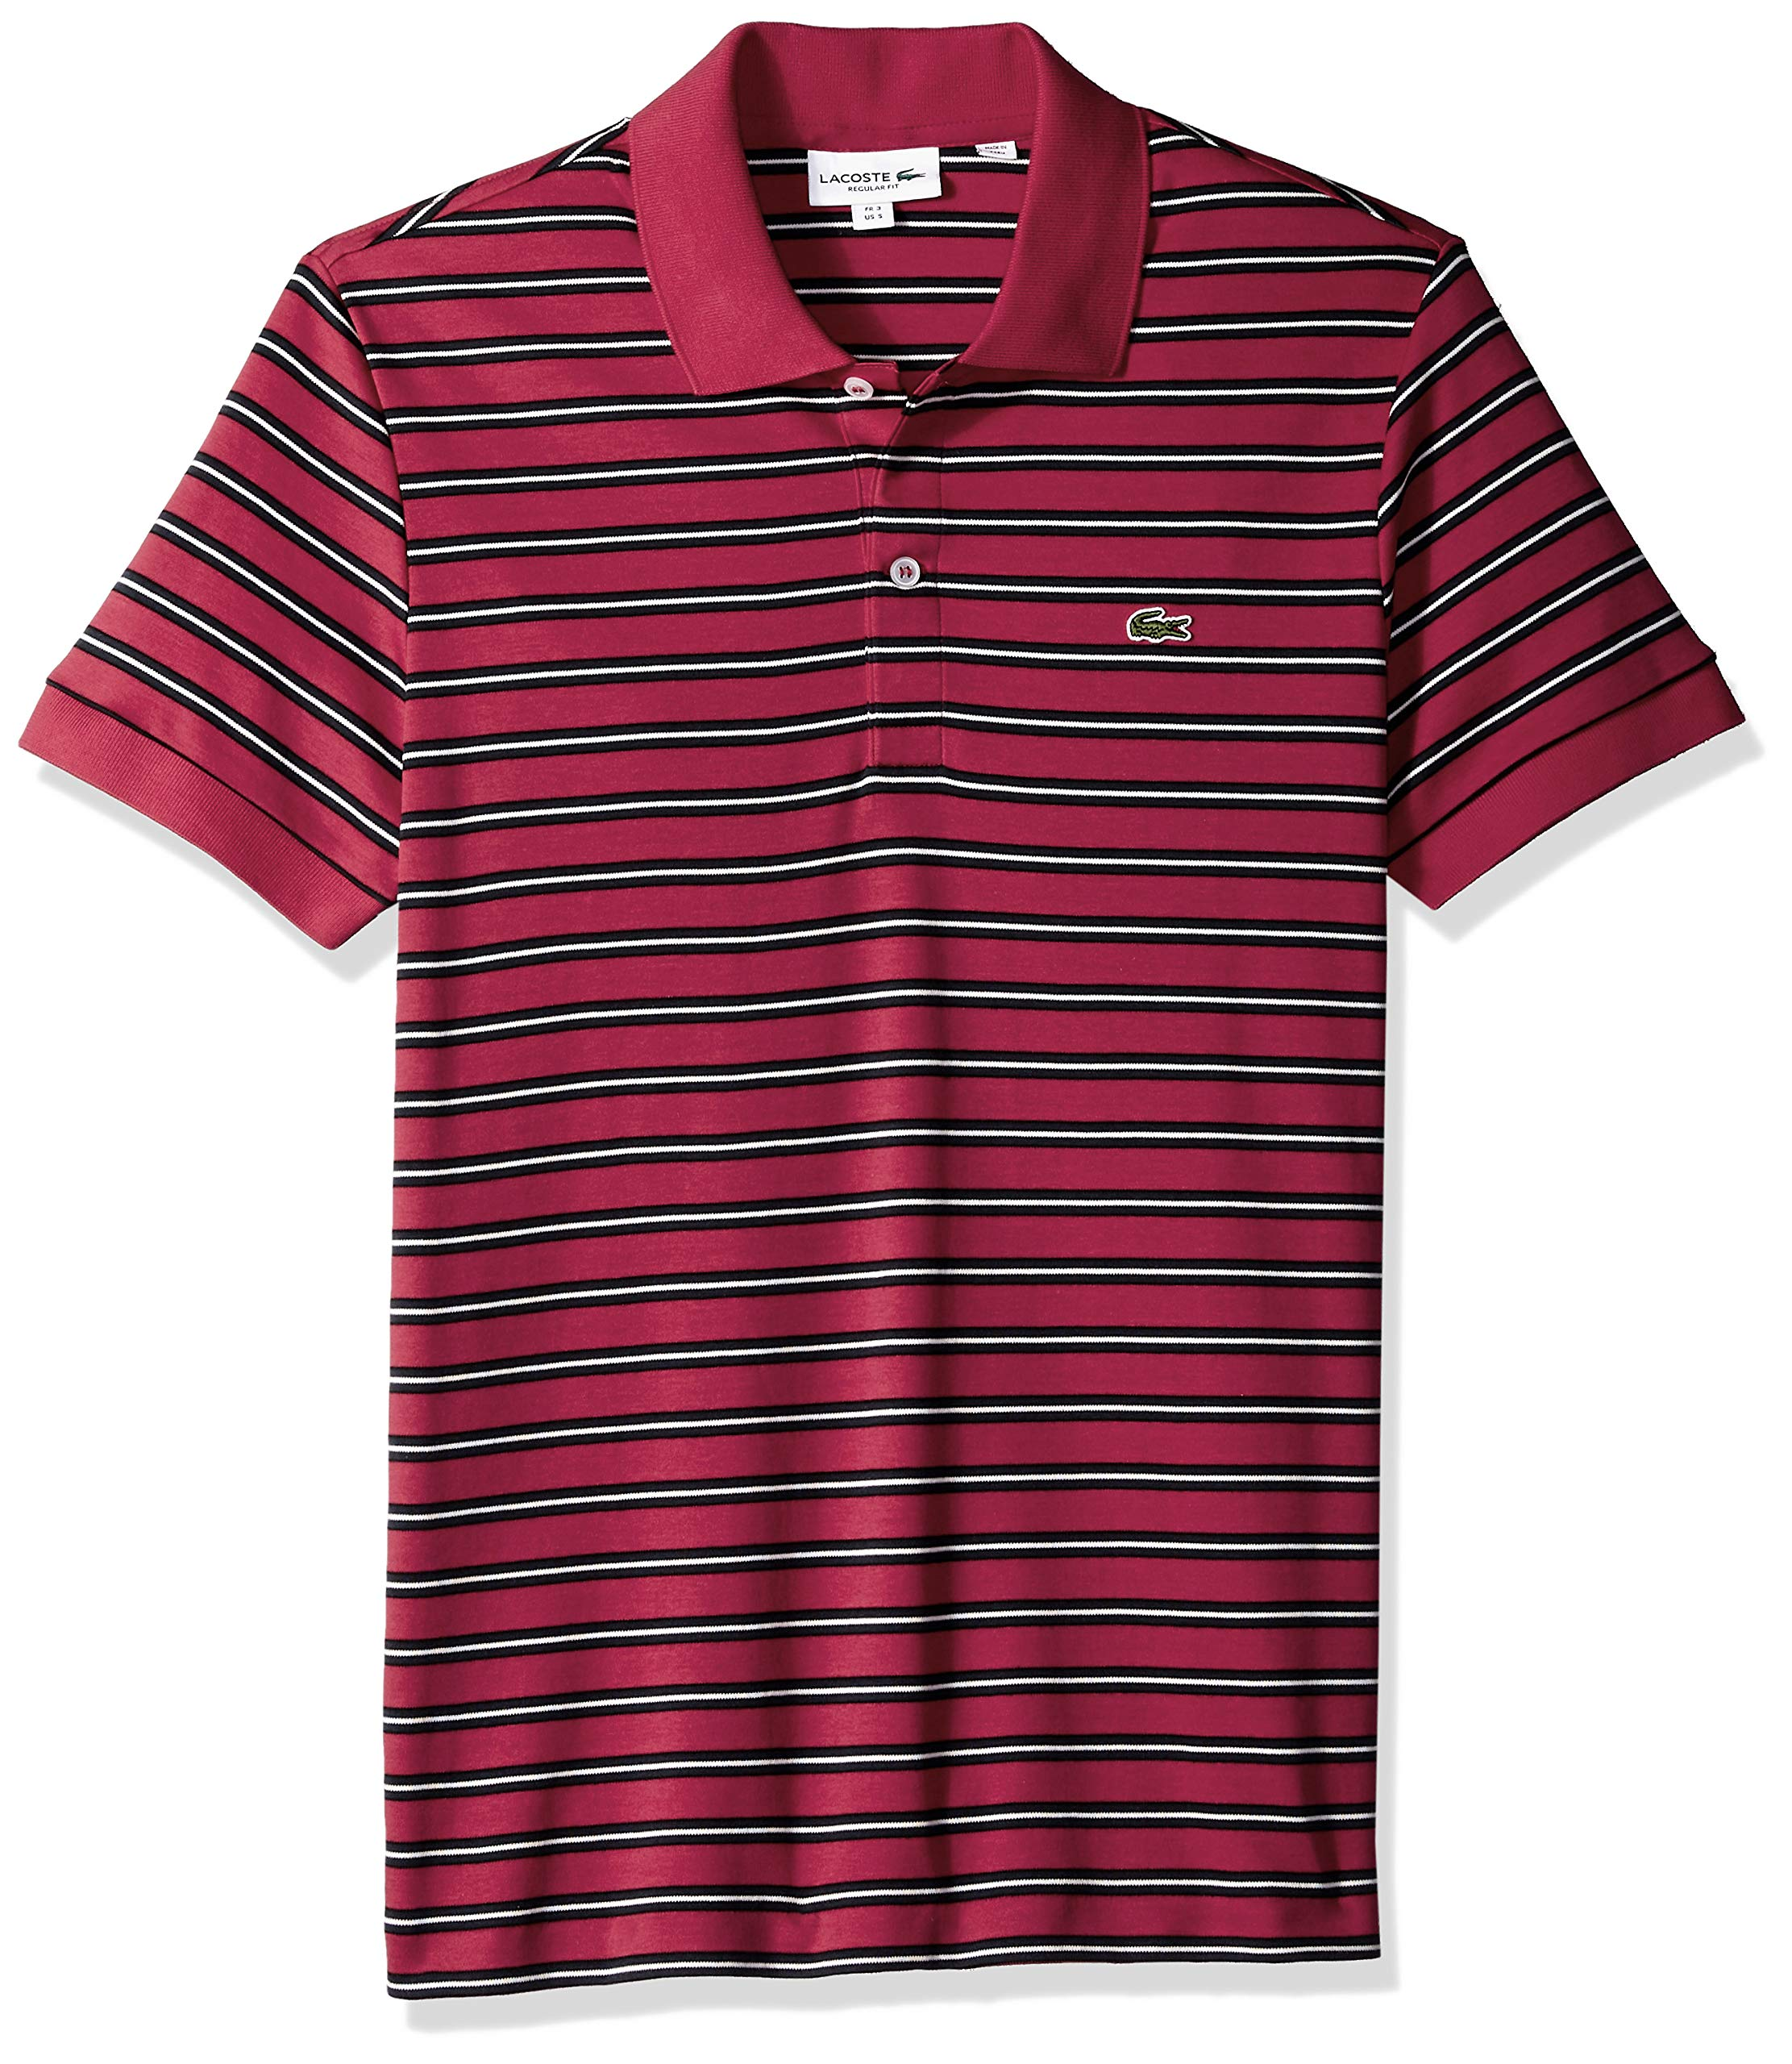 Lacoste Men's Short Sleeve Pima Reg Fit Fine Stripe Polo, Persian Red/Black/Meridian, XX-Large